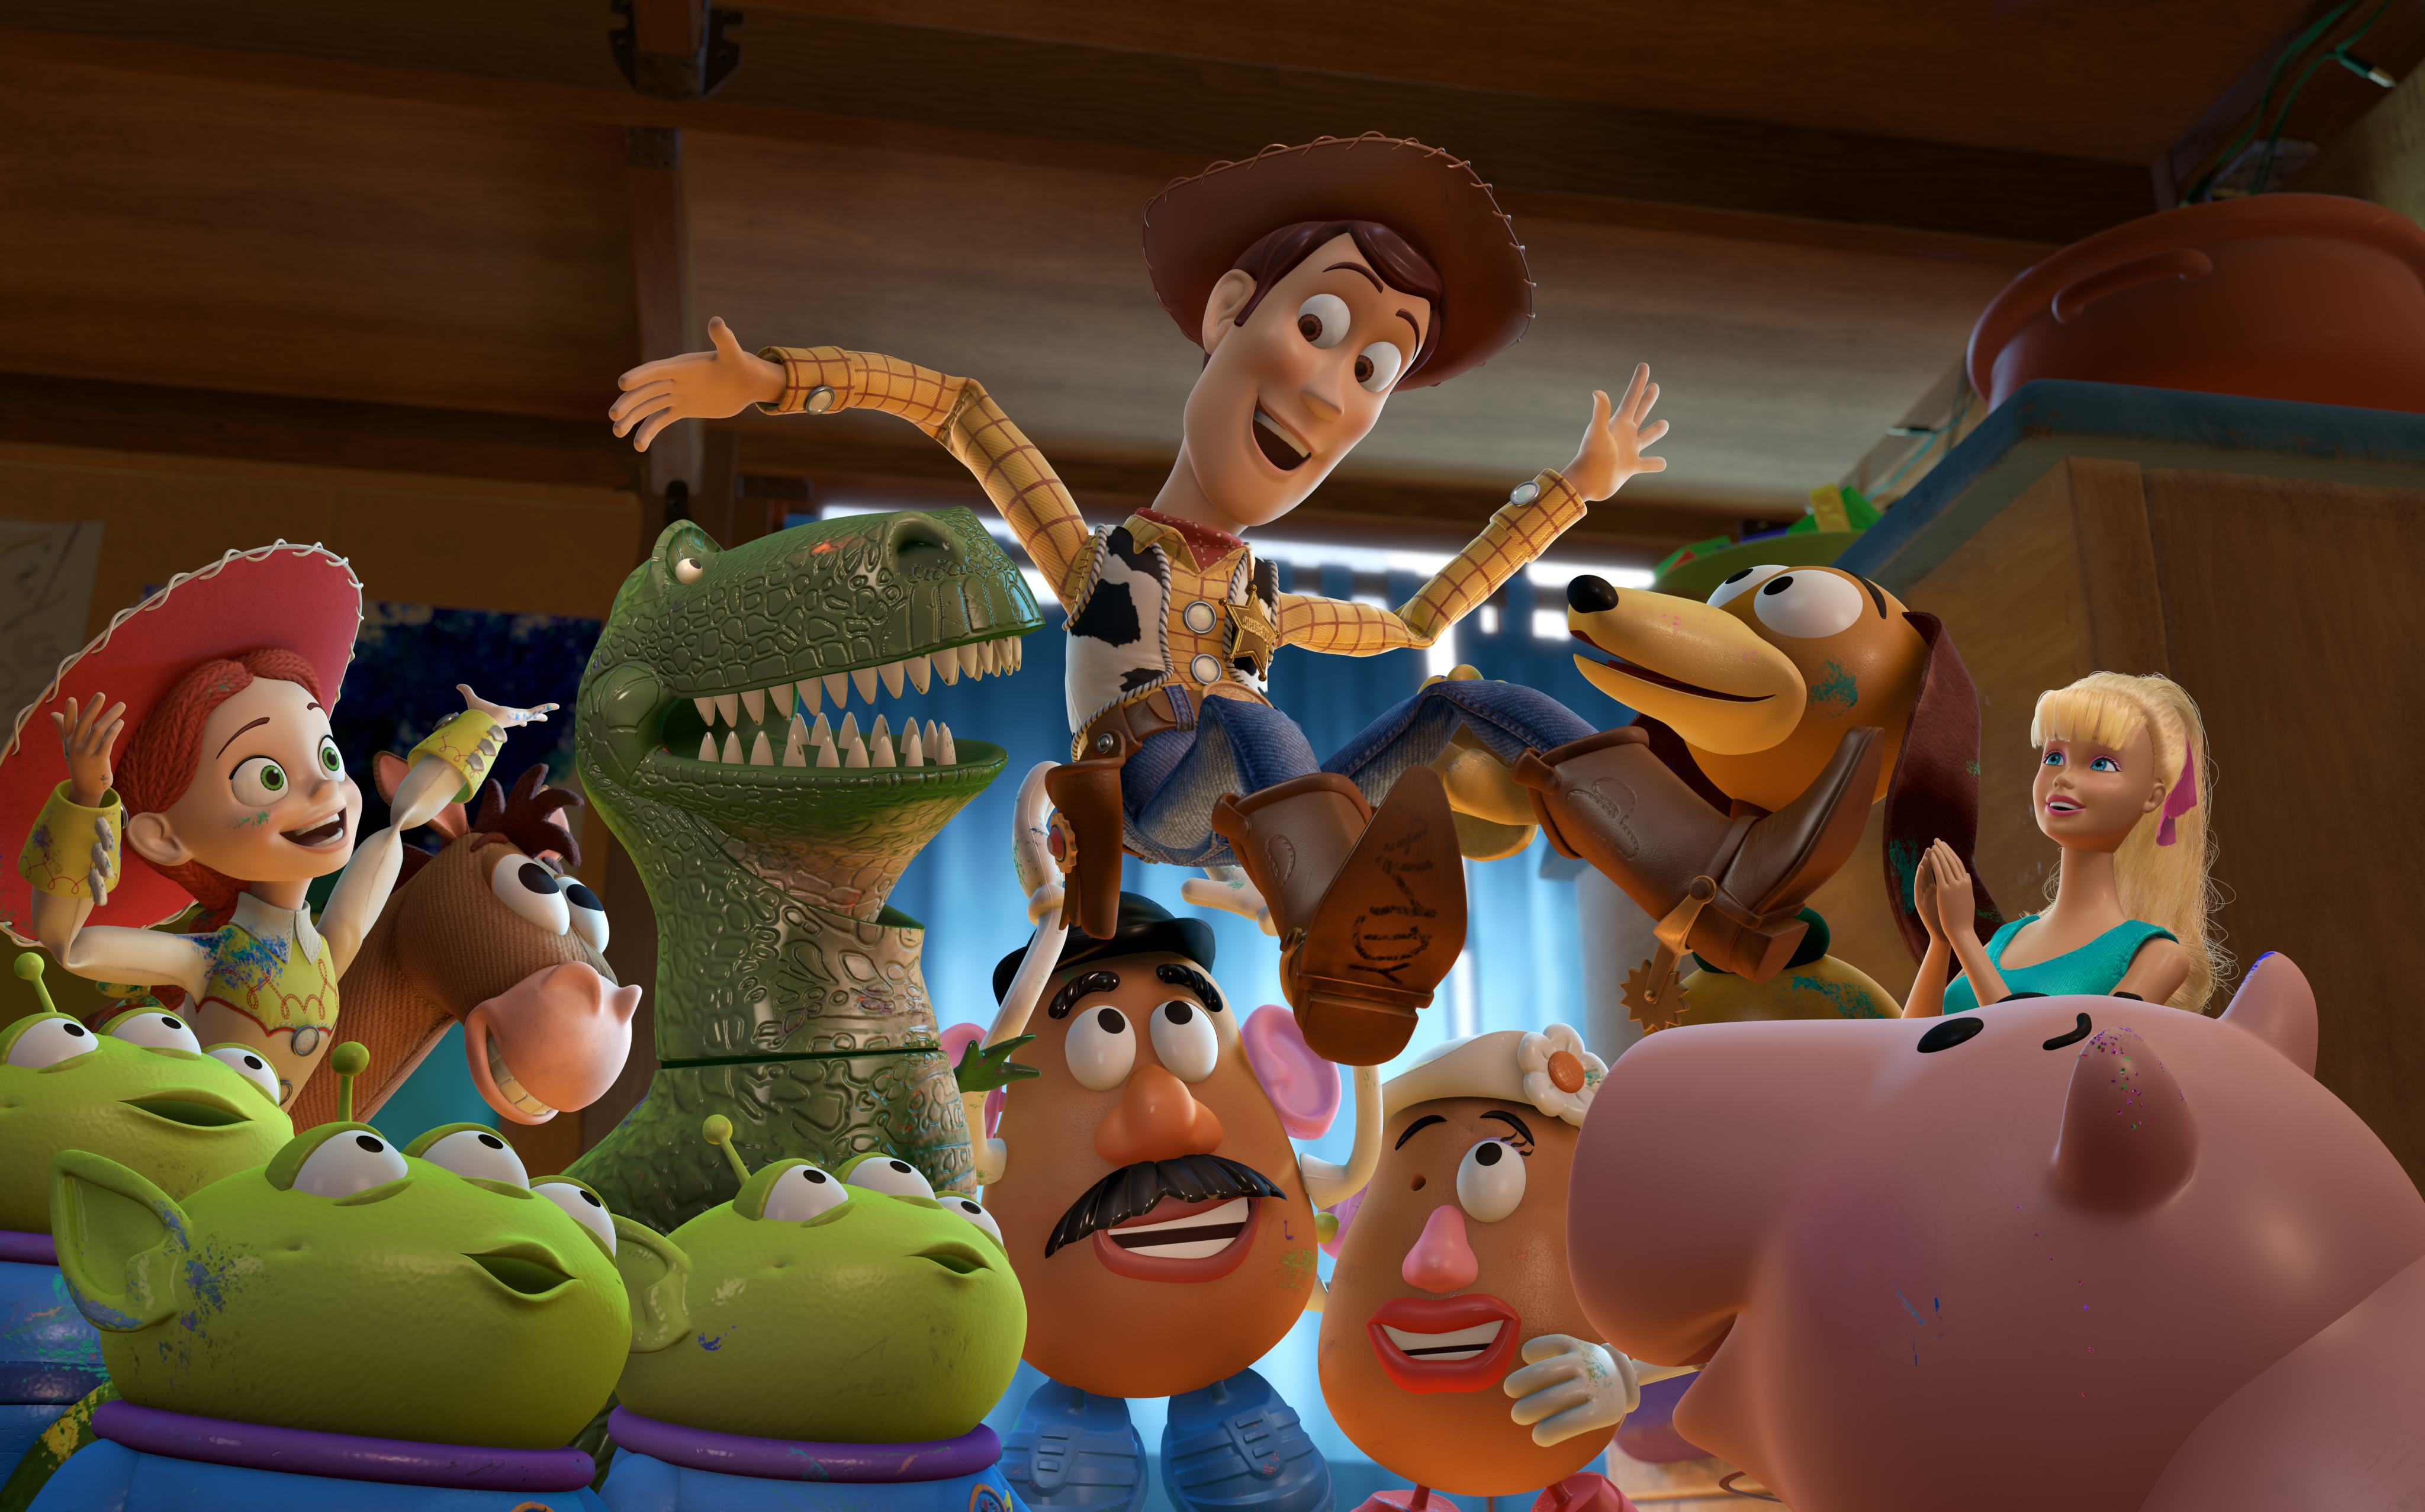 Why The Rumor That 'Toy Story 4' Is Coming In 2015 Must Be False